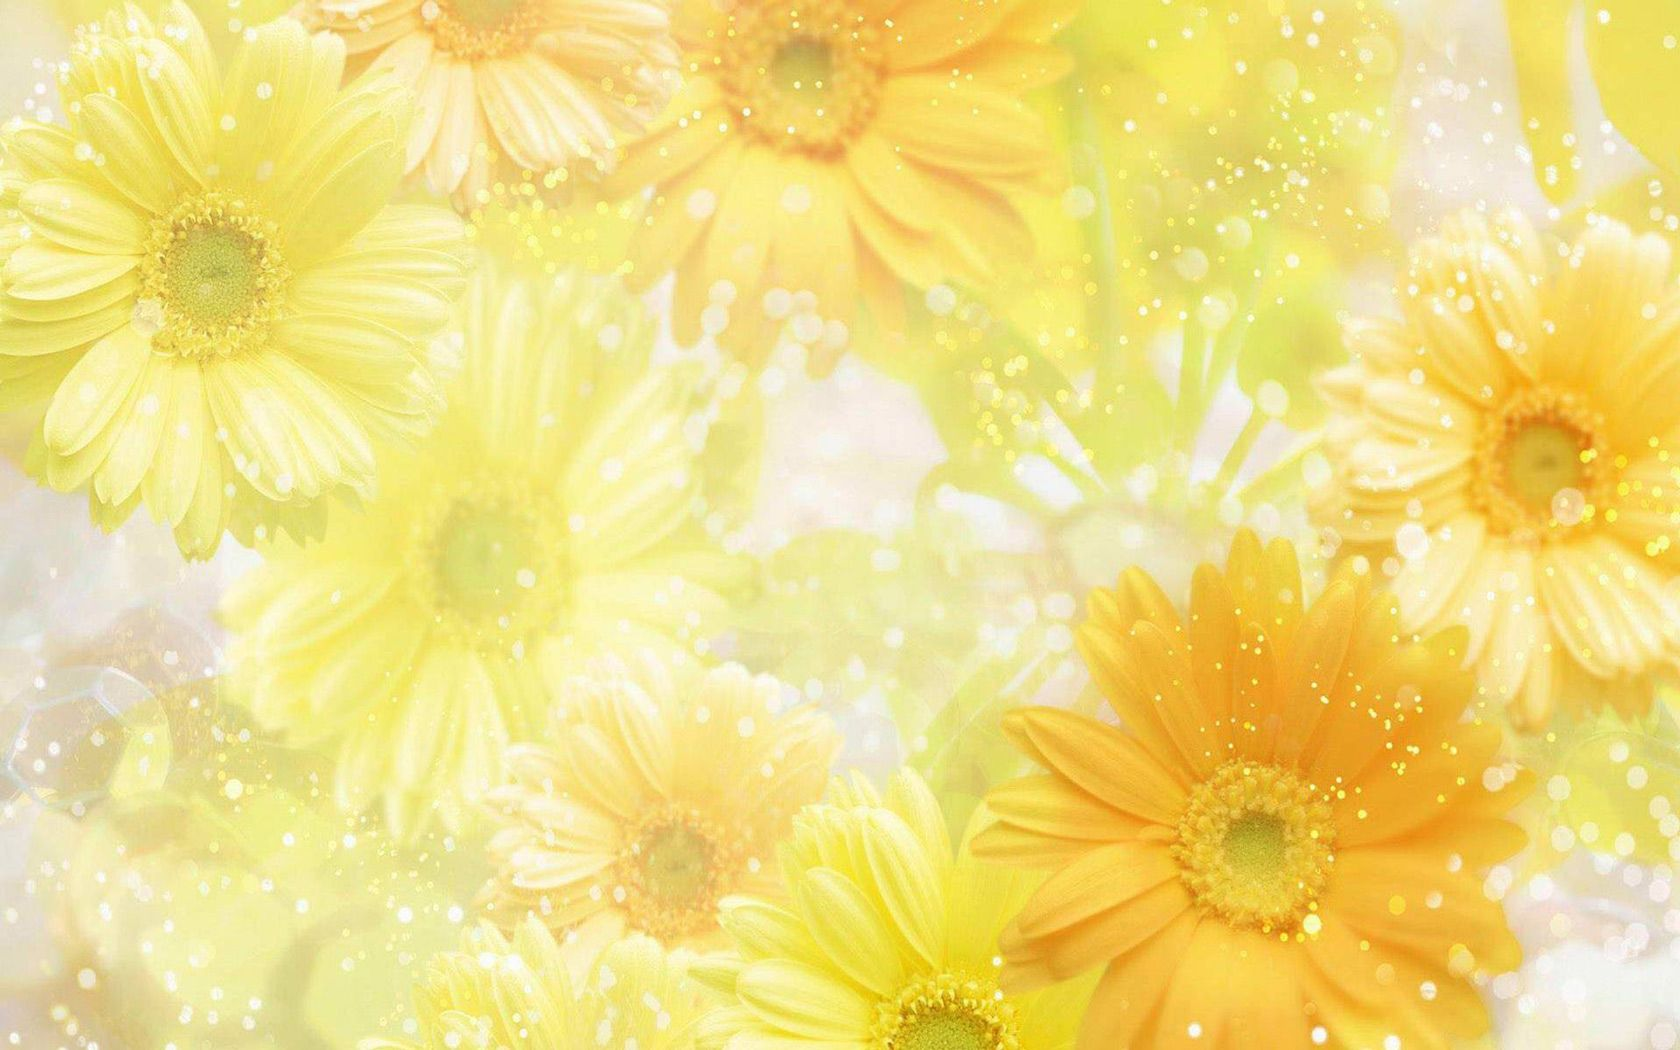 Free Yellow Spring Flowers Computer Desktop Wallpaper Yellow Flower Wallpaper Spring Wallpaper Hd Flower Wallpaper